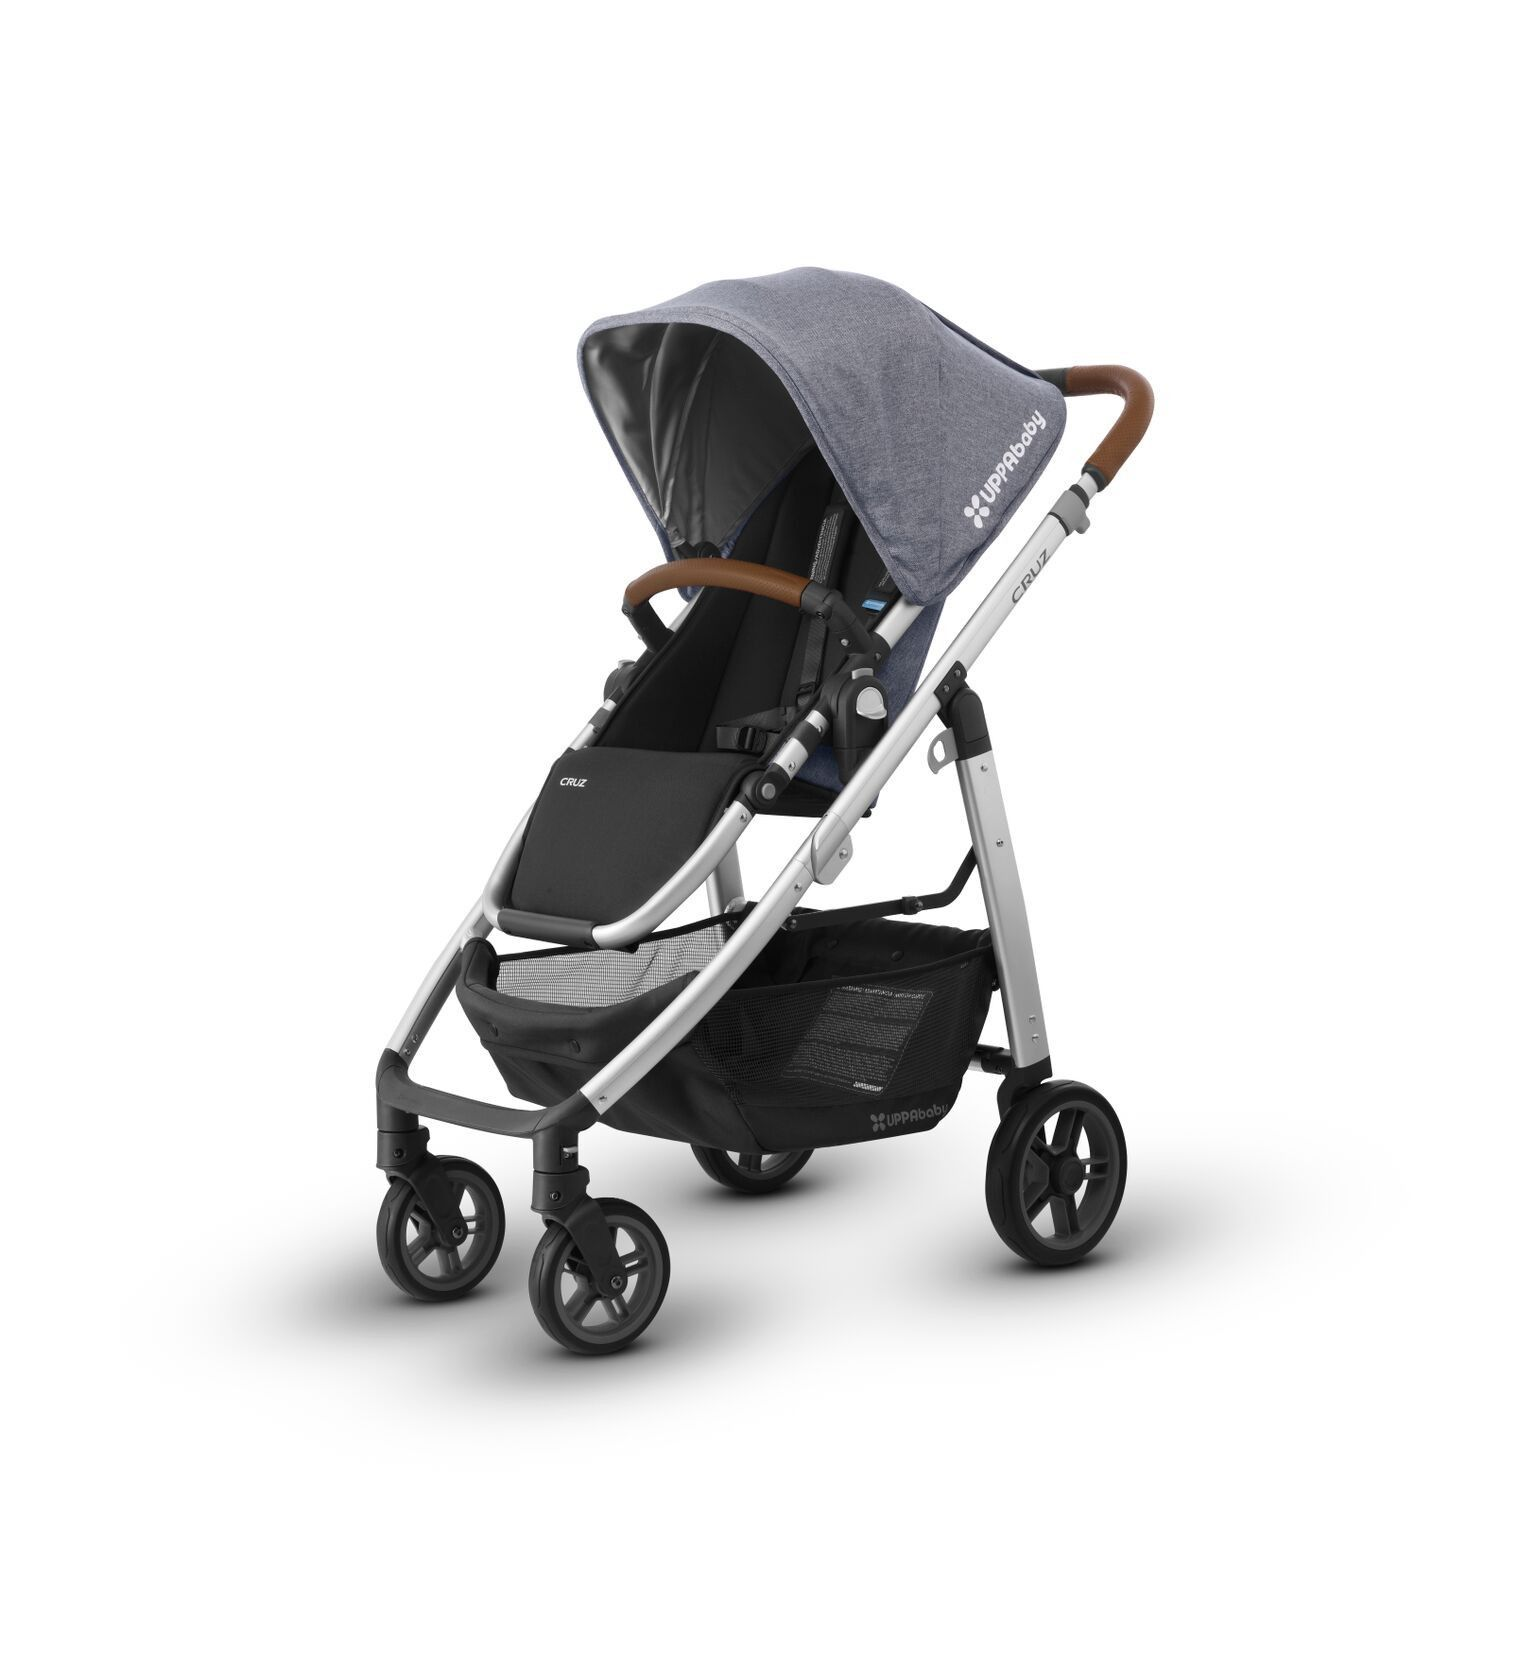 The new Uppababy Stroller Cruz A sleek pushchair with detachable seat on the market 2017 stroller version